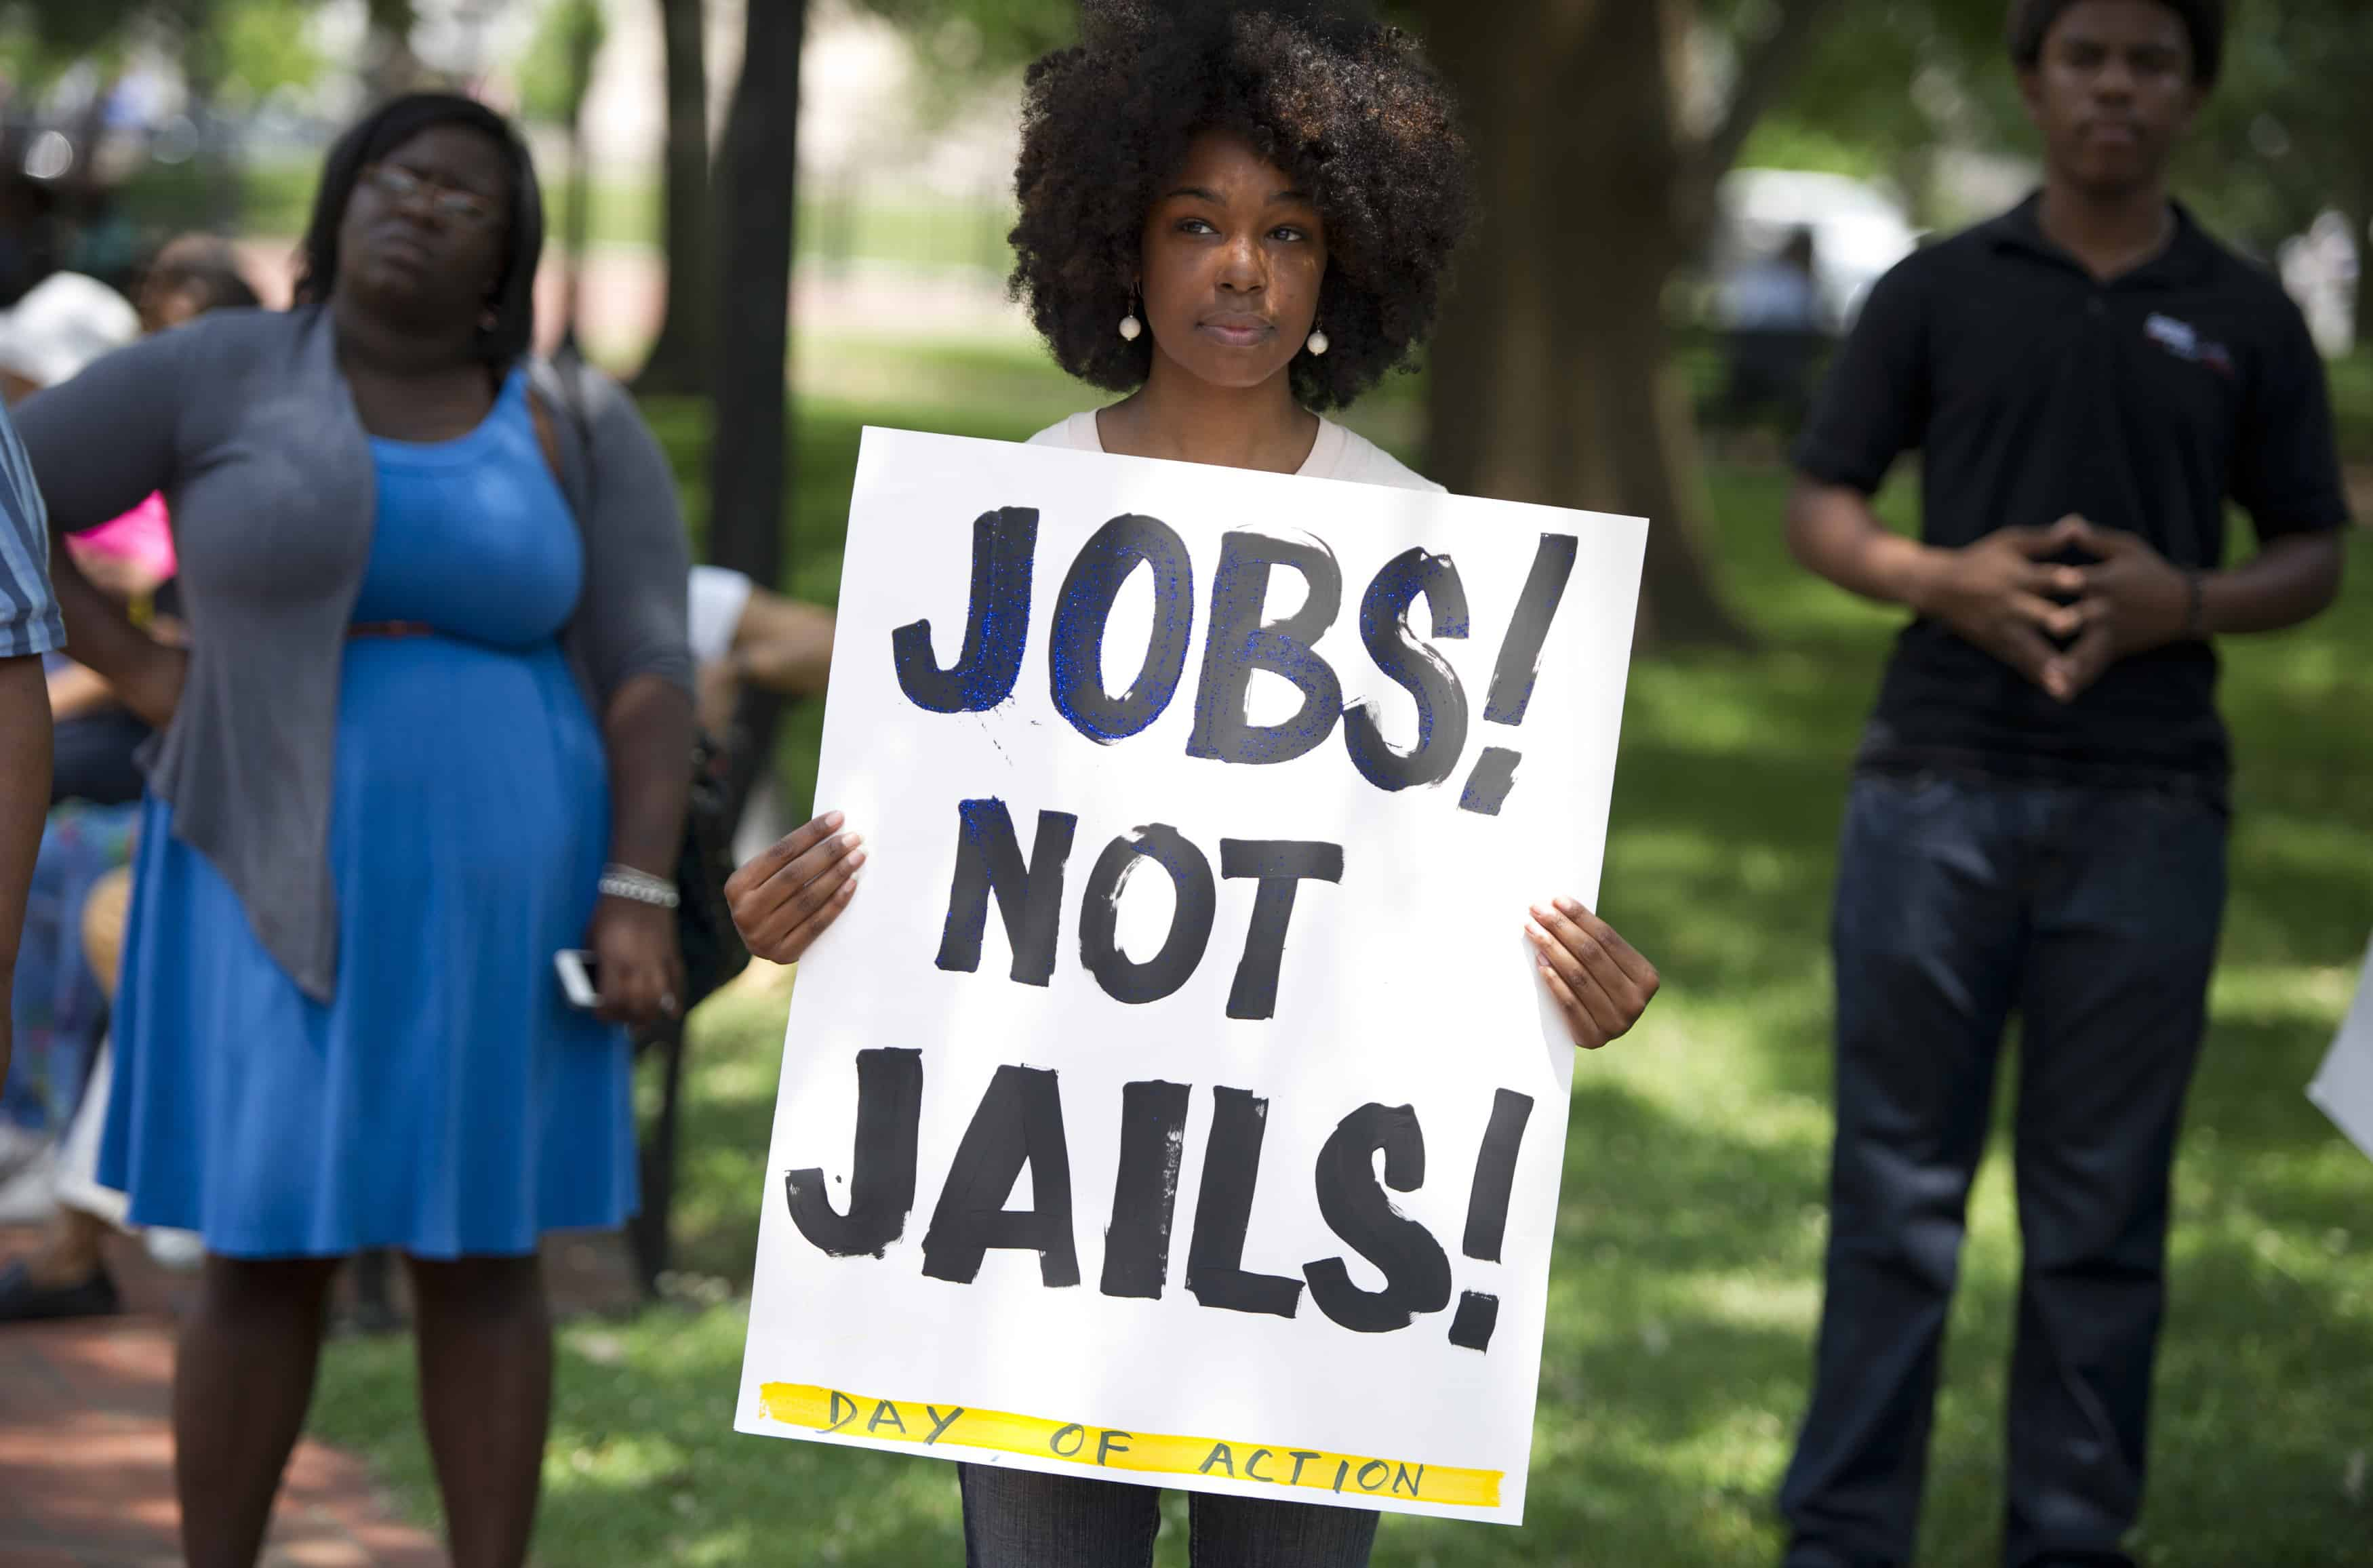 Jobs not jails: Protesters call for drug legalization in Washington, D.C.